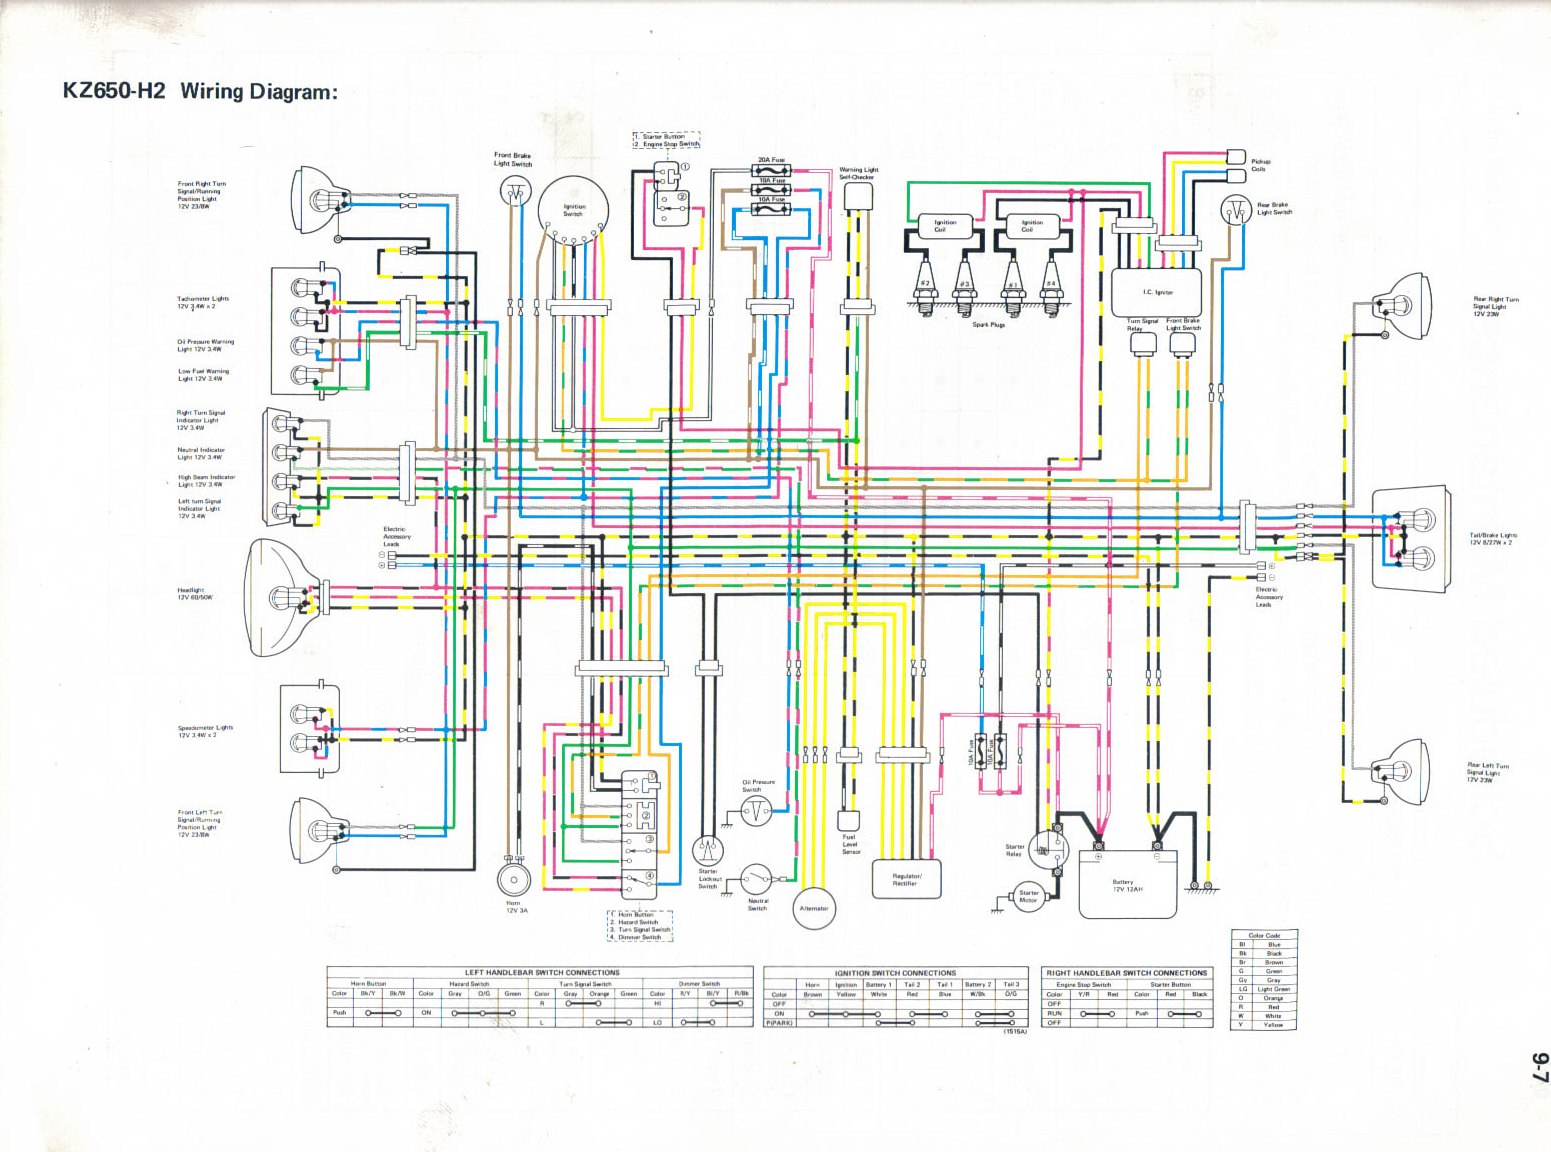 Kawasaki Kz650 Wiring Diagram - New Wiring Diagrams on kawasaki ninja 500 wiring diagram, kawasaki kx80 wiring diagram, kawasaki nomad wiring diagram, kawasaki voyager xii wiring diagram, kawasaki ninja 250 wiring diagram, kawasaki ke175 wiring diagram, kawasaki kz1100 wiring diagram,